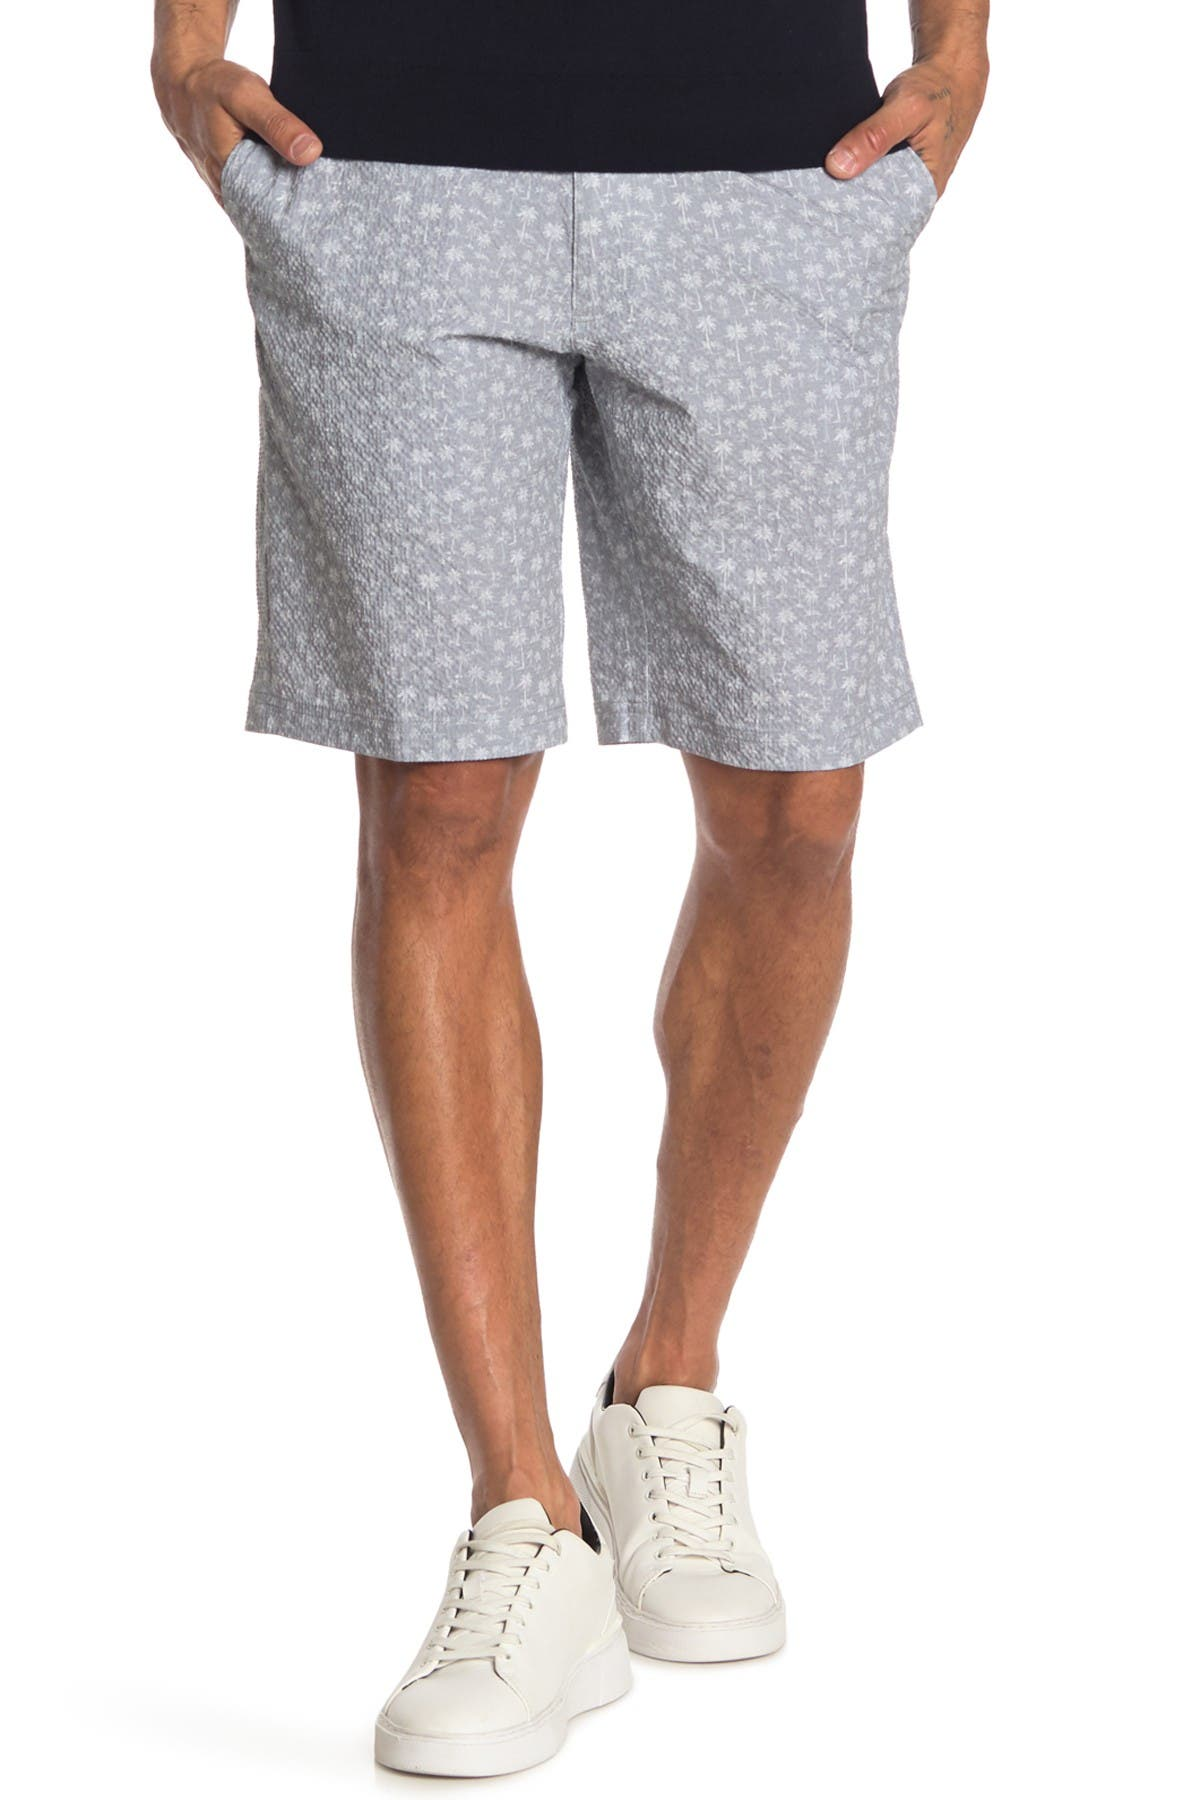 Image of Jack Nicklaus Palm Tree Print Shorts